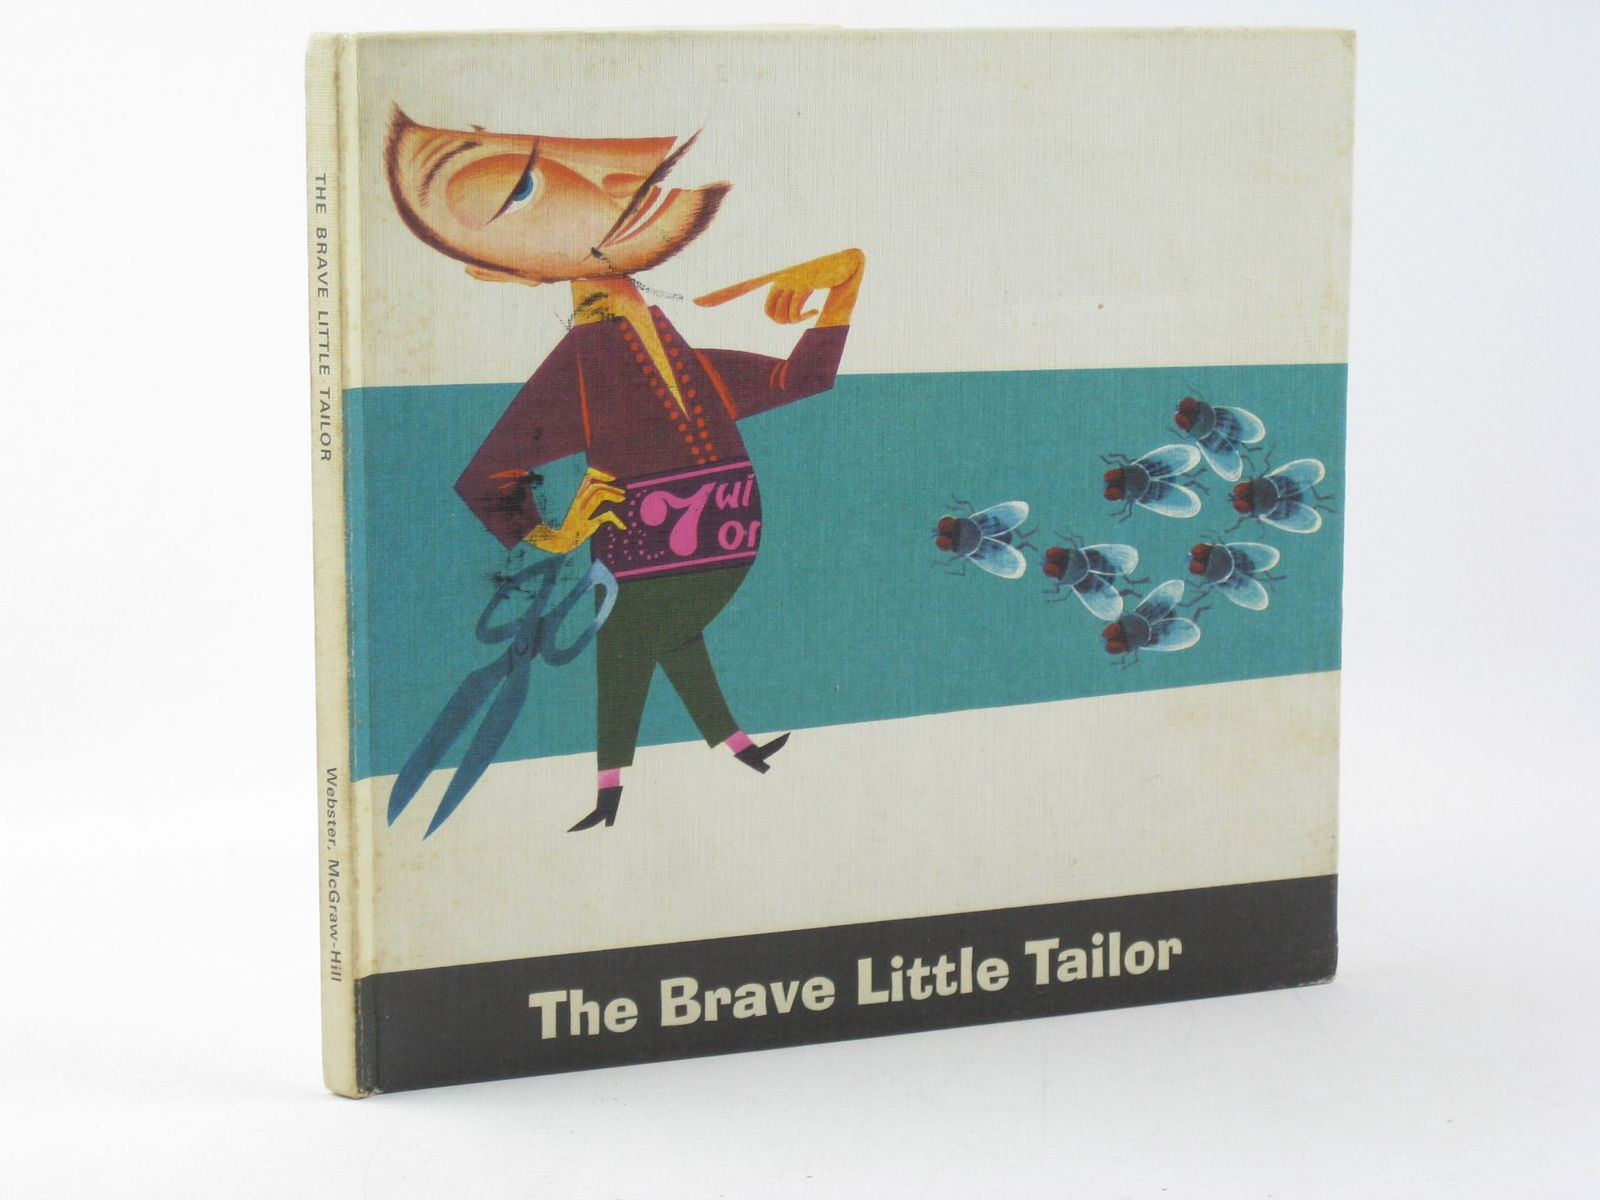 Photo of THE BRAVE LITTLE TAILOR written by Grimm, Brothers Claus, Audrey illustrated by Probst, E. published by Mcgraw-Hill Publishing Company Ltd. (STOCK CODE: 1311587)  for sale by Stella & Rose's Books